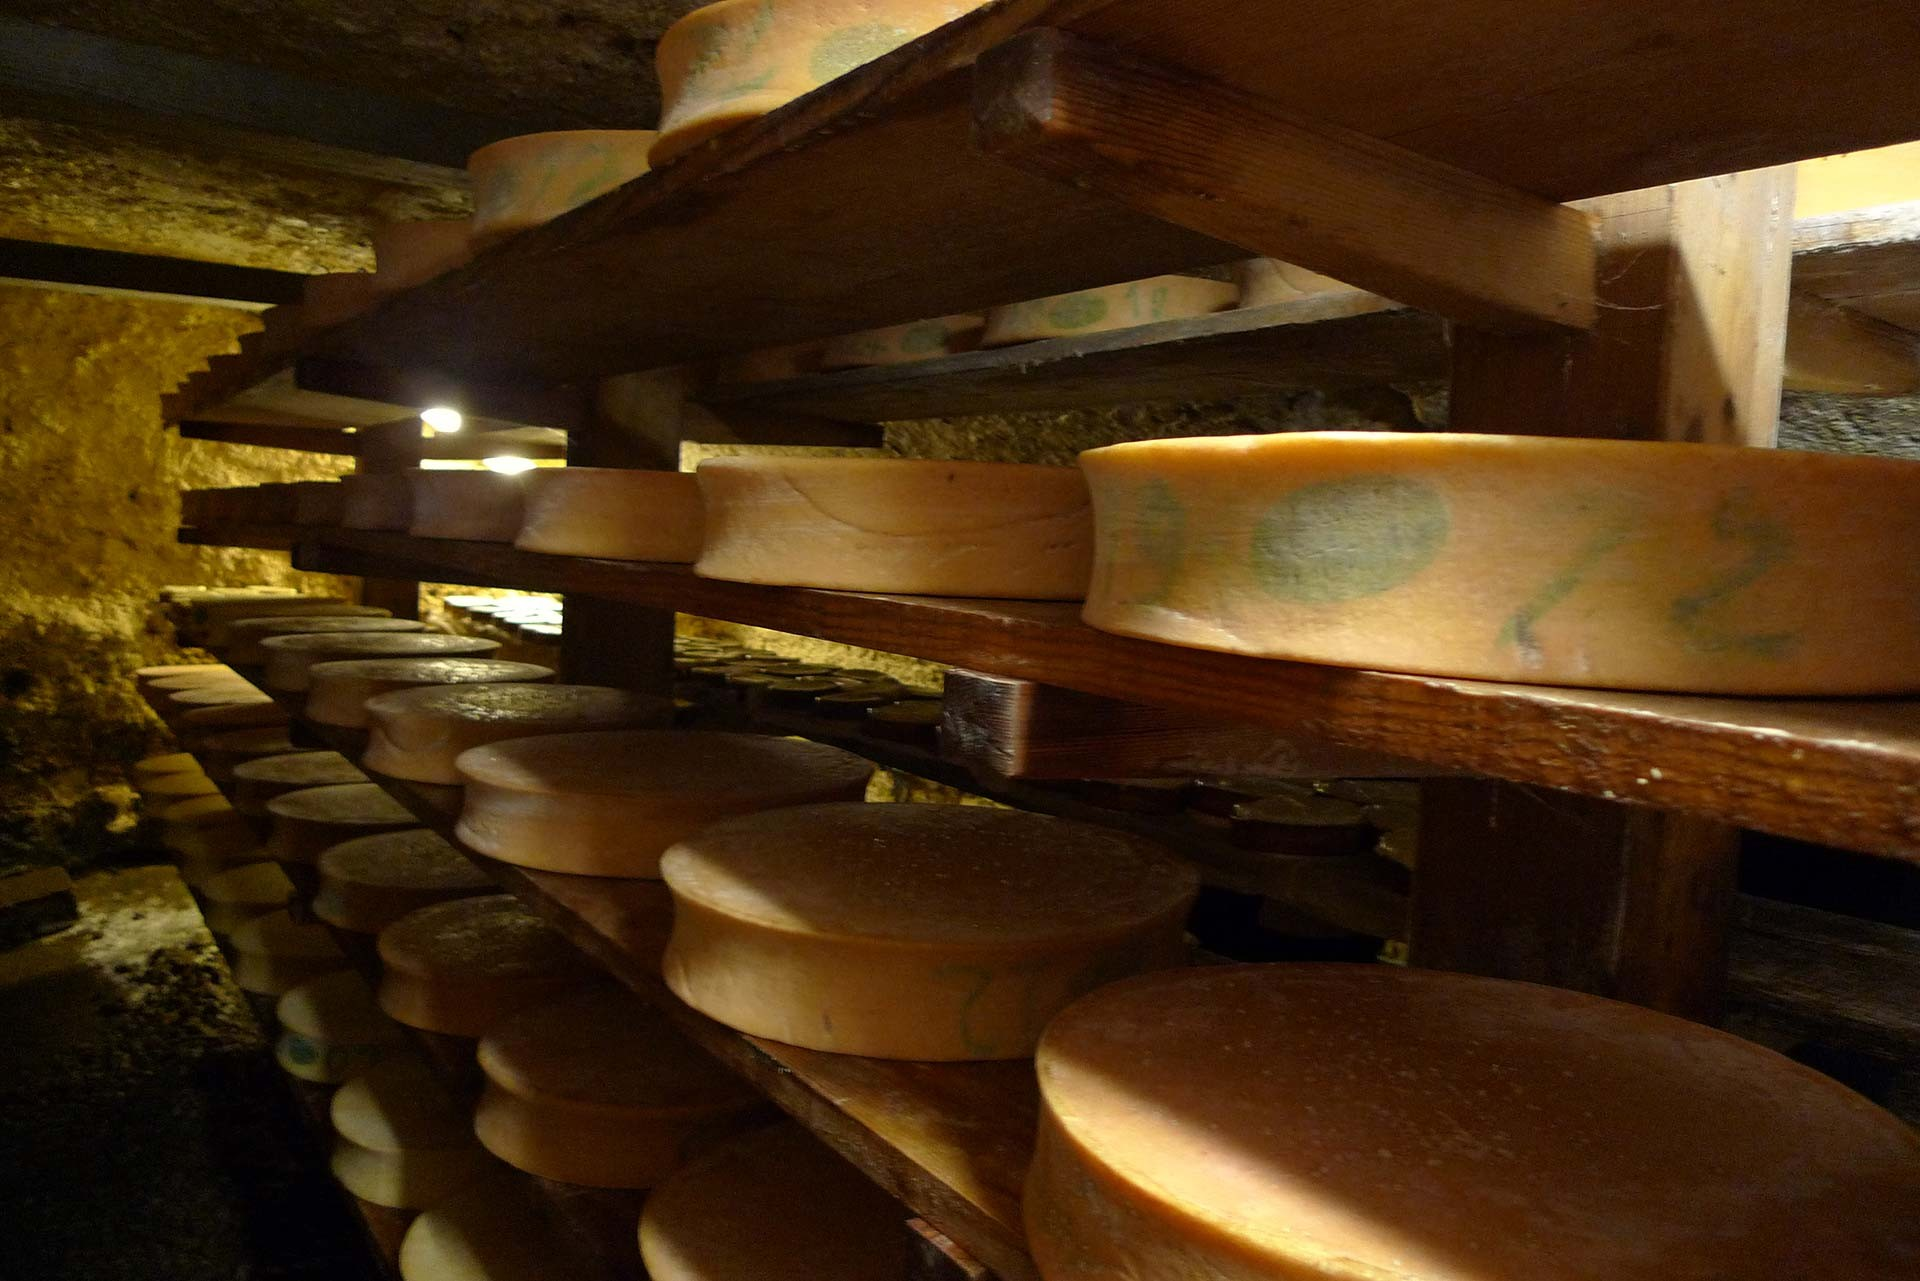 Fabrication du fromage